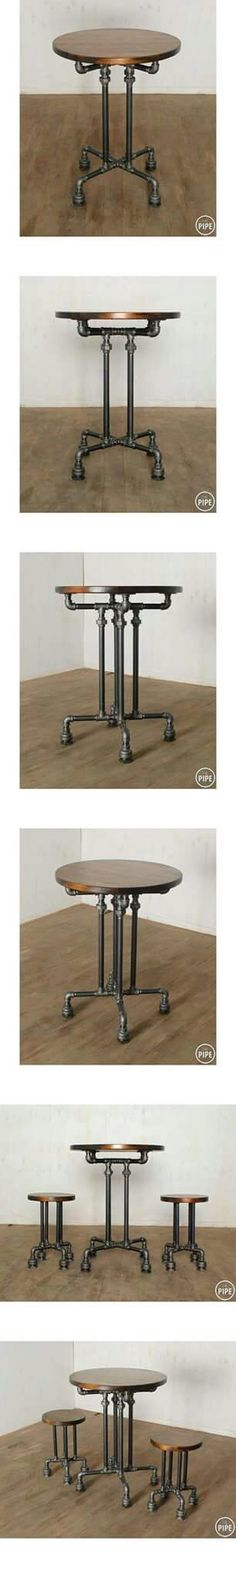 DIY table with black pipe from Gill-Roy's Hardware! - DIY table with black pipe from Gill-Roy's Hardware! DIY table with black pipe from Gill-Roy's Hardware!